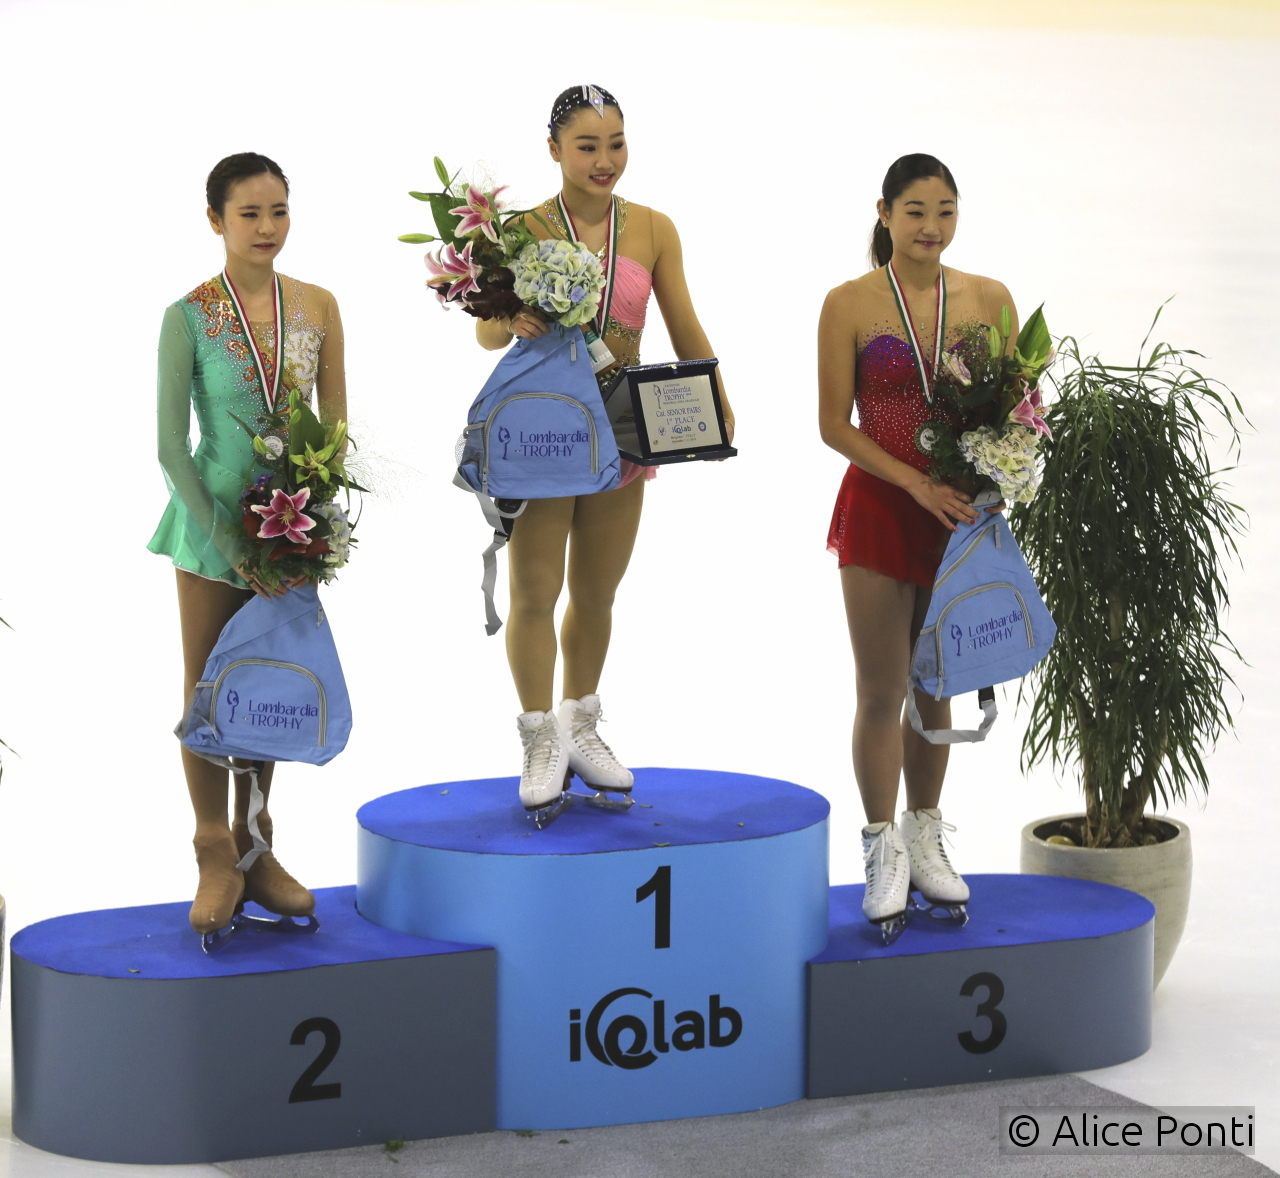 The three medalists of this year's edition of Lombardia Trophy, all smiles